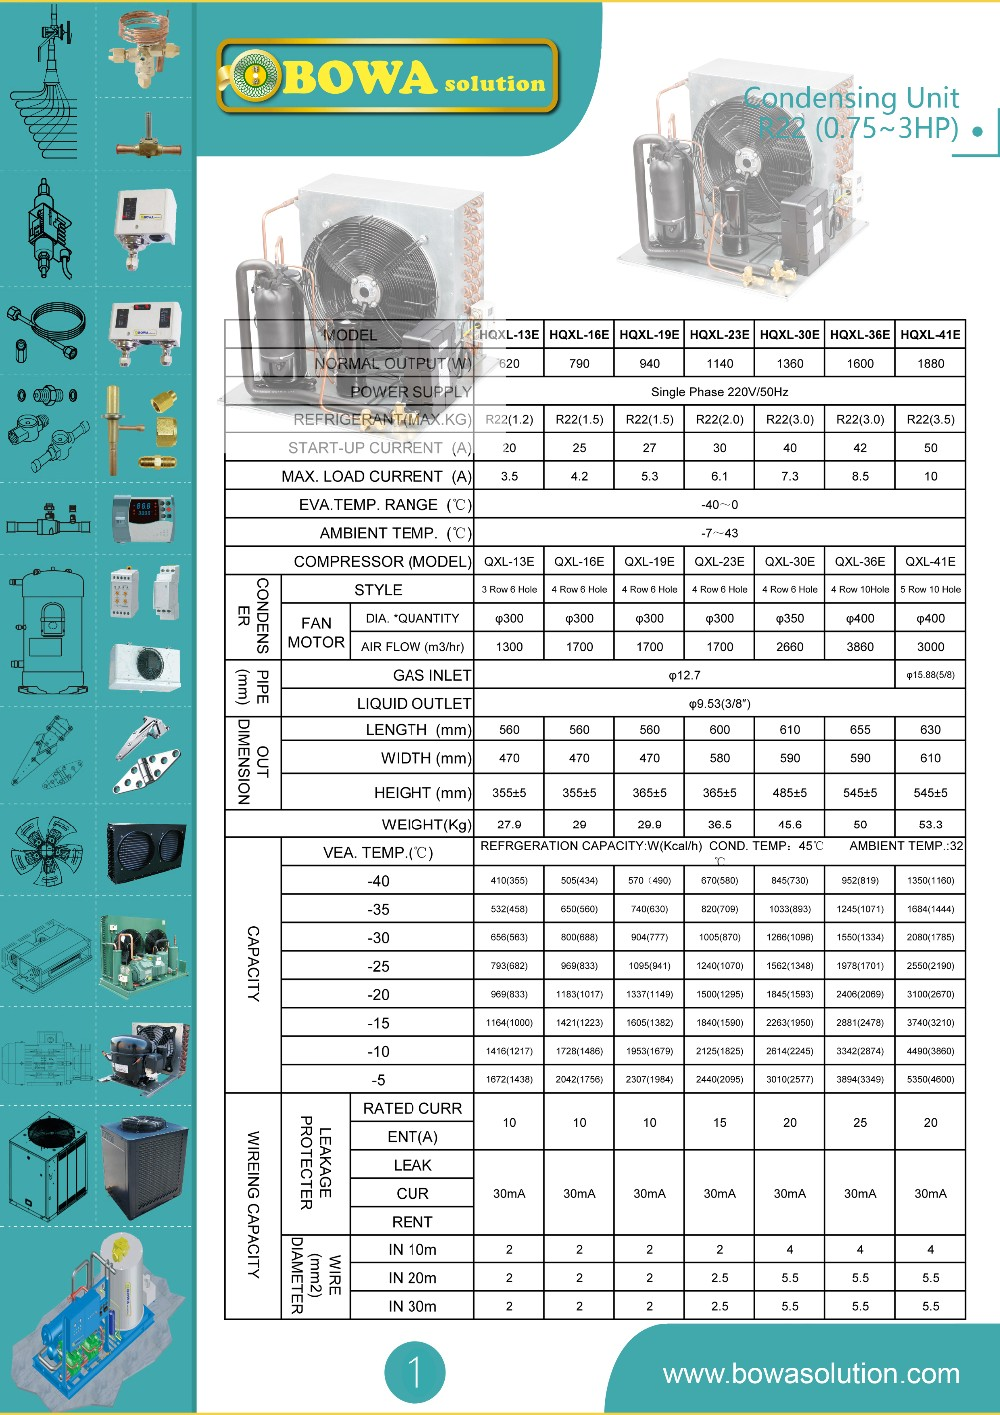 Condensing Unit R22vertical